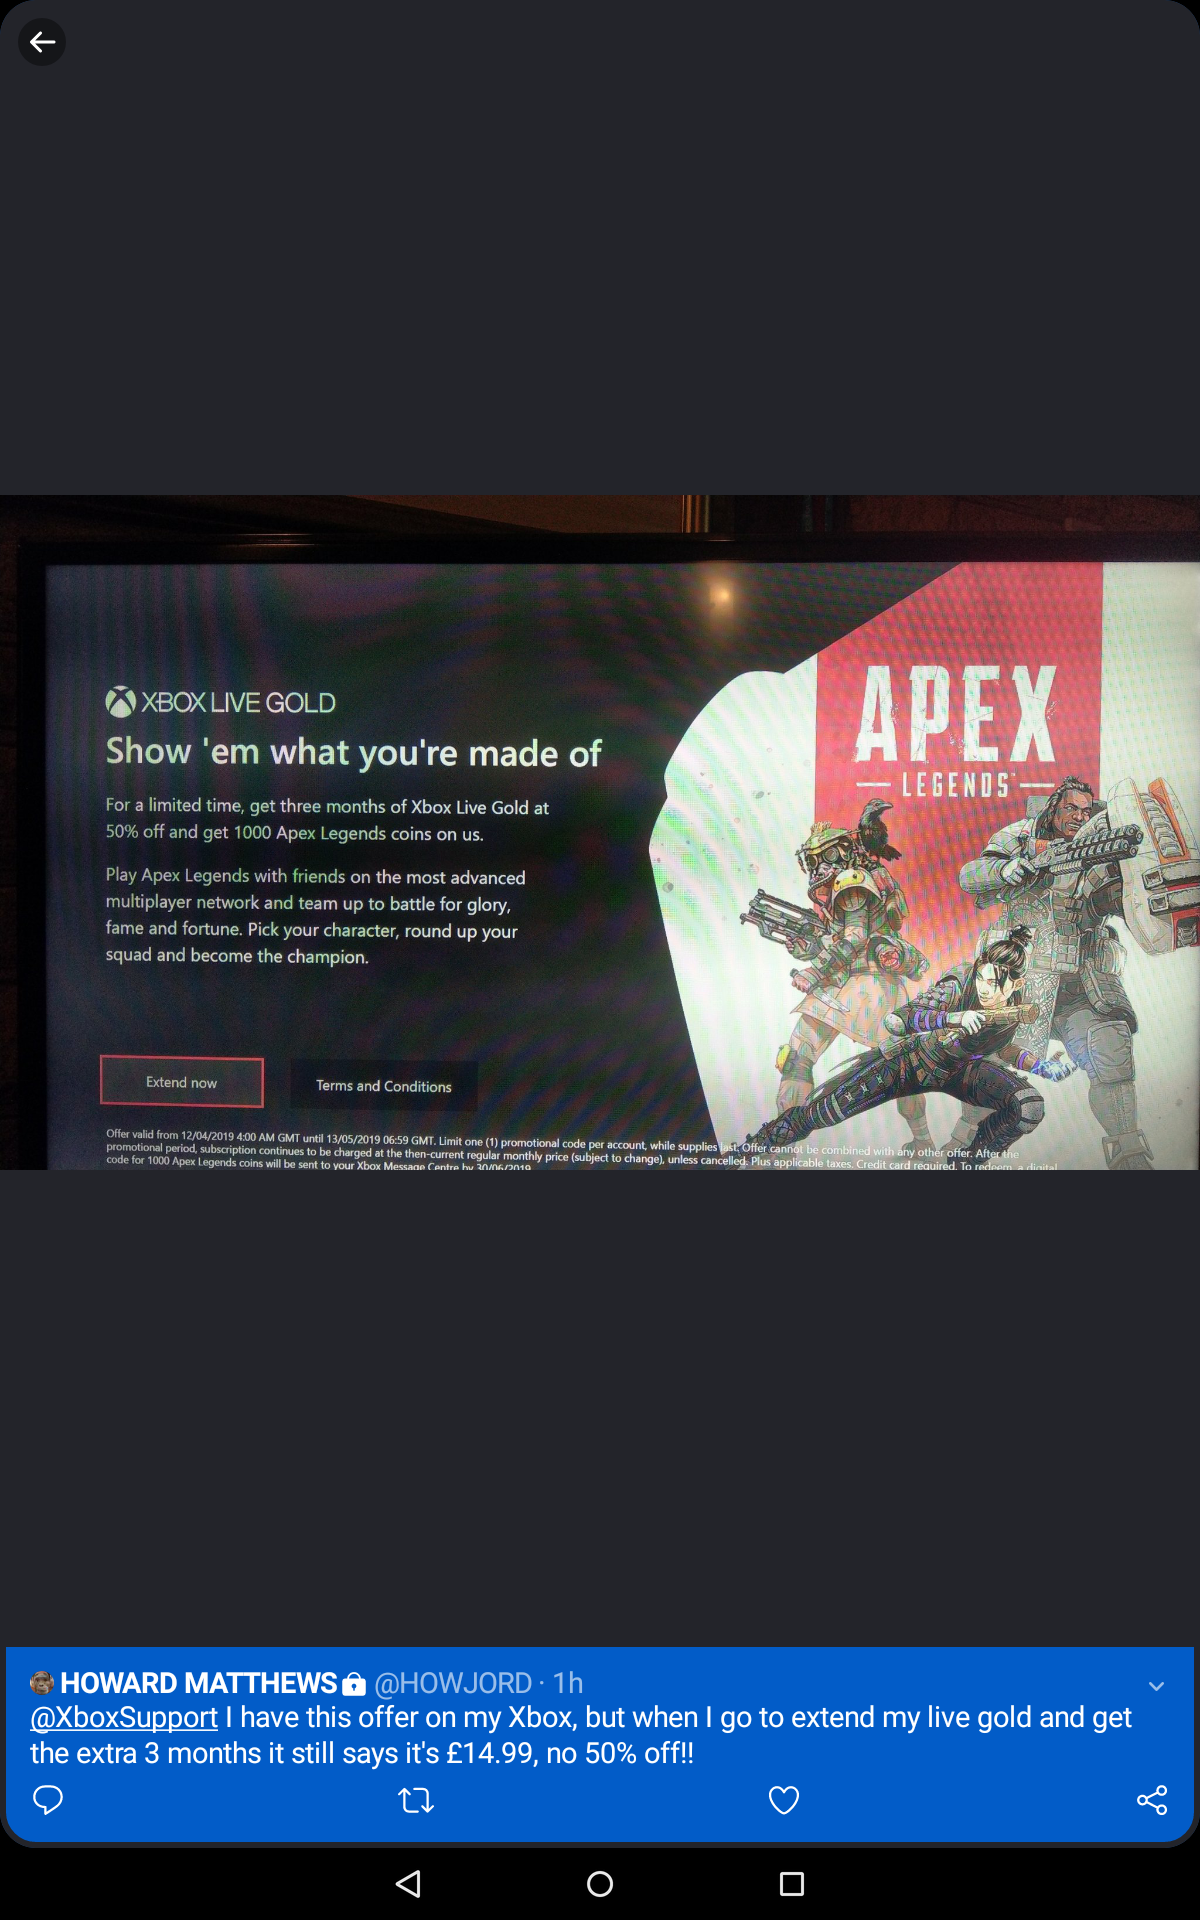 3 month gold 50% off free 1000 apex coins - Microsoft Community